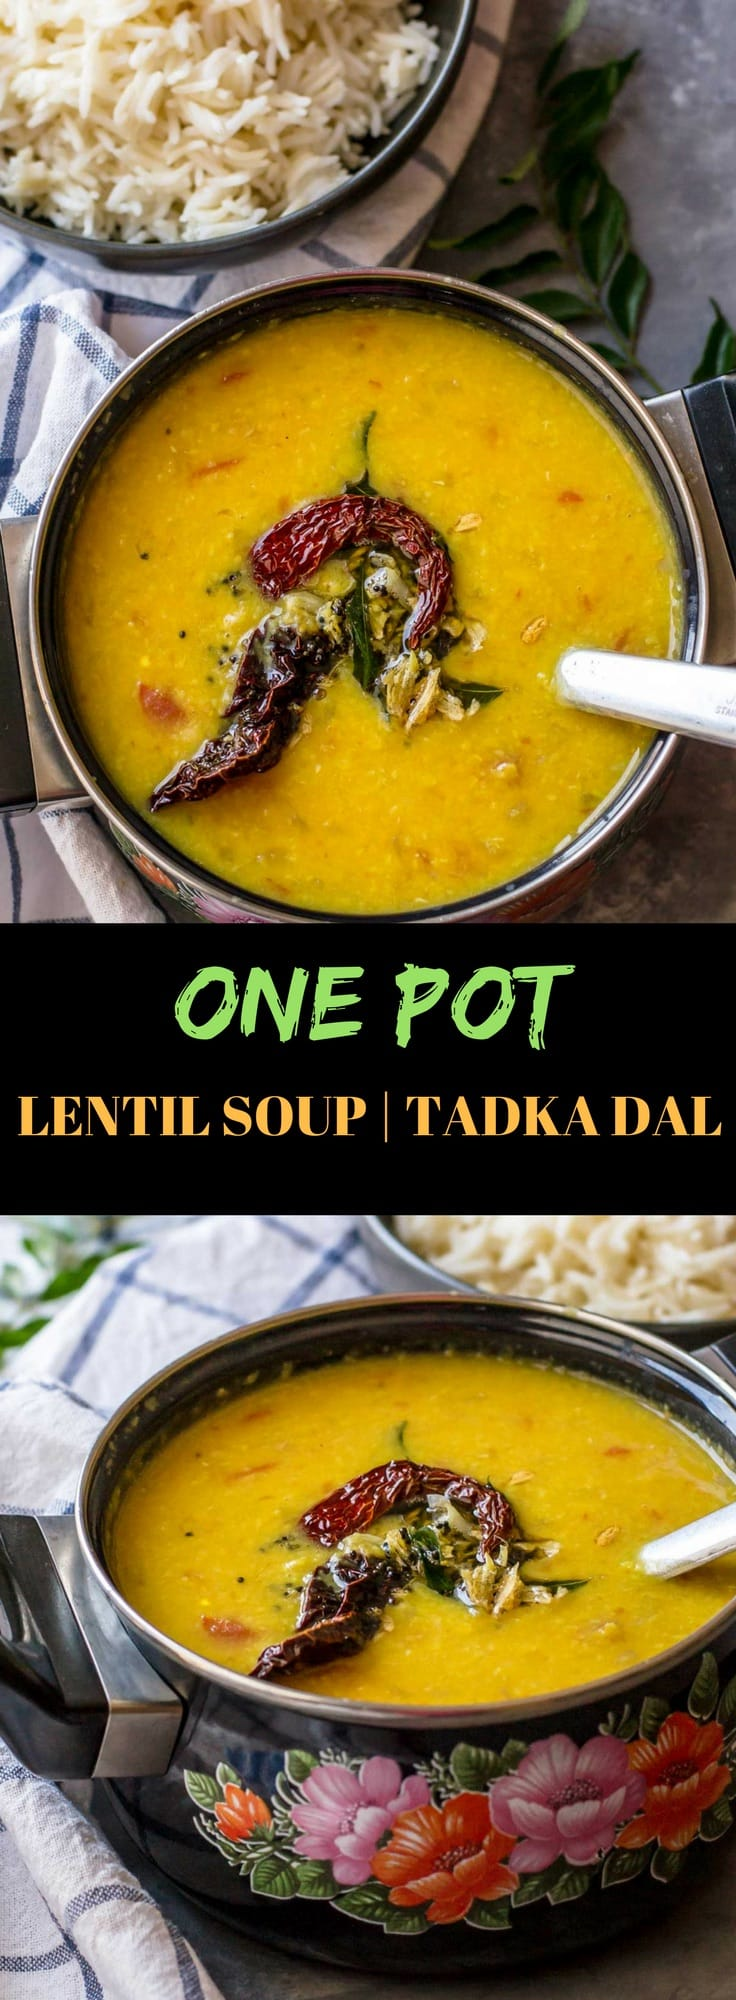 You'll love this simple yet flavorful Tadka dal (tempered dal) recipe - make it in an Instant Pot or a pressure cooker - and your meal is ready in no time.